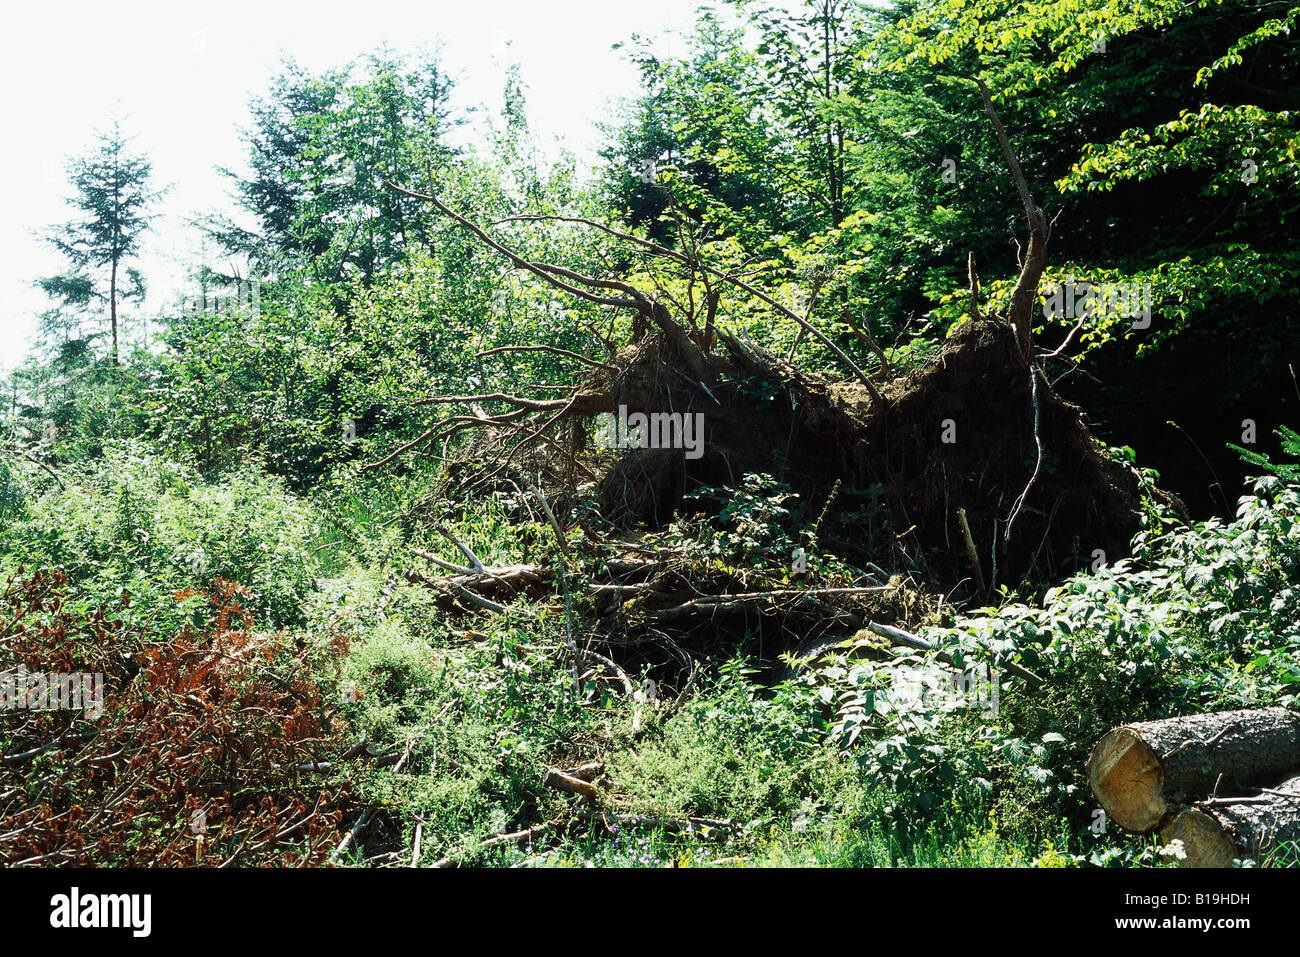 Uprooted tree Stock Photo